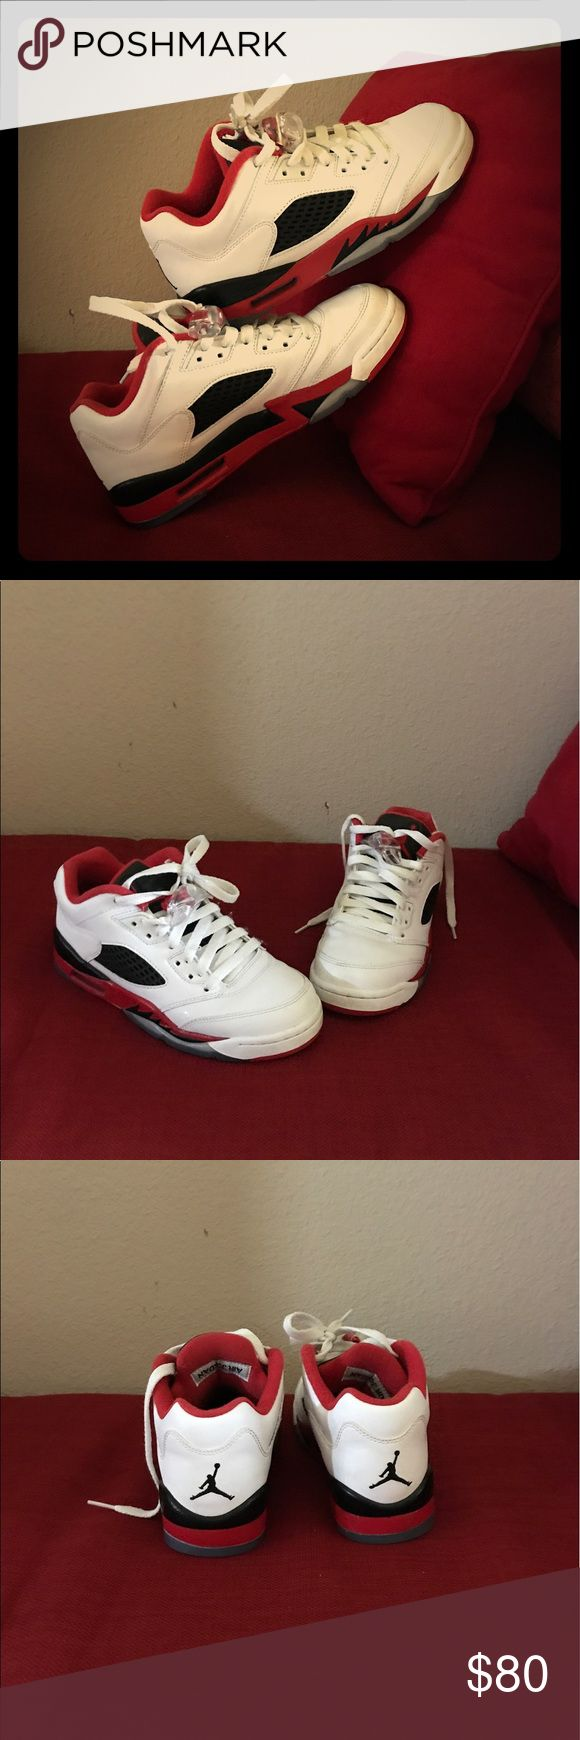 ☄️AIR JORDAN☄️ NEGOTIABLE ON PRICE! AUTHENTIC MICHAEL JORDAN SNEAKERS!! USED TWICE THEREFORE IN MINT CONDITION. COLORS (WHITE RED AND BLACK) Air Jordan Shoes Sneakers